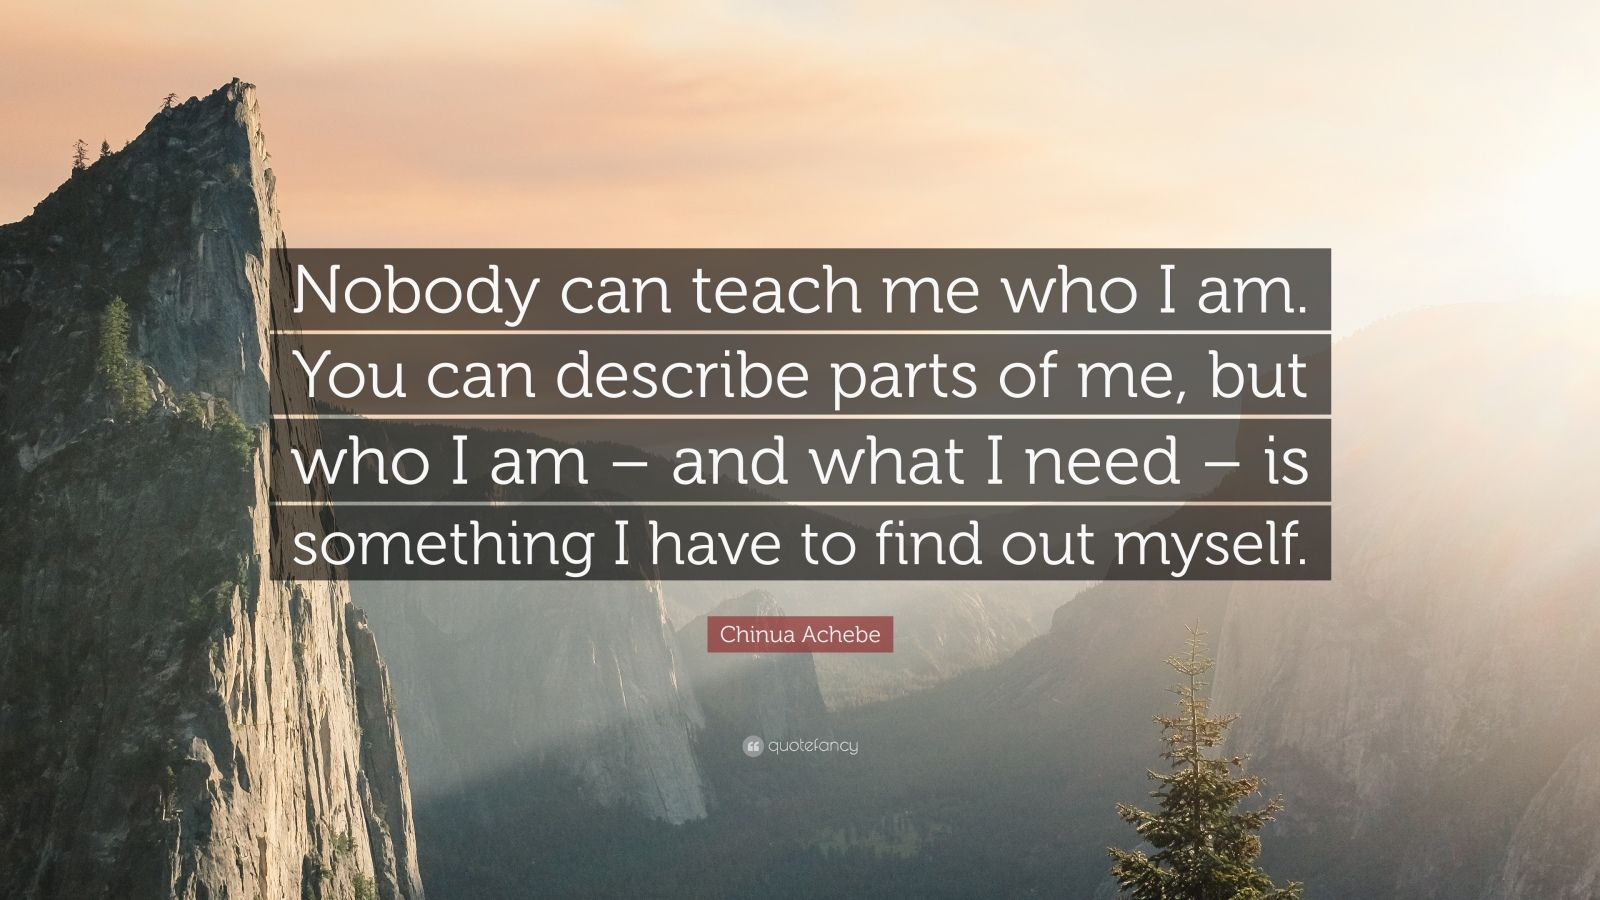 """Chinua Achebe Quote: """"Nobody can teach me who I am. You can describe parts of me, but who I am – and what I need – is something I have to find out myself."""""""